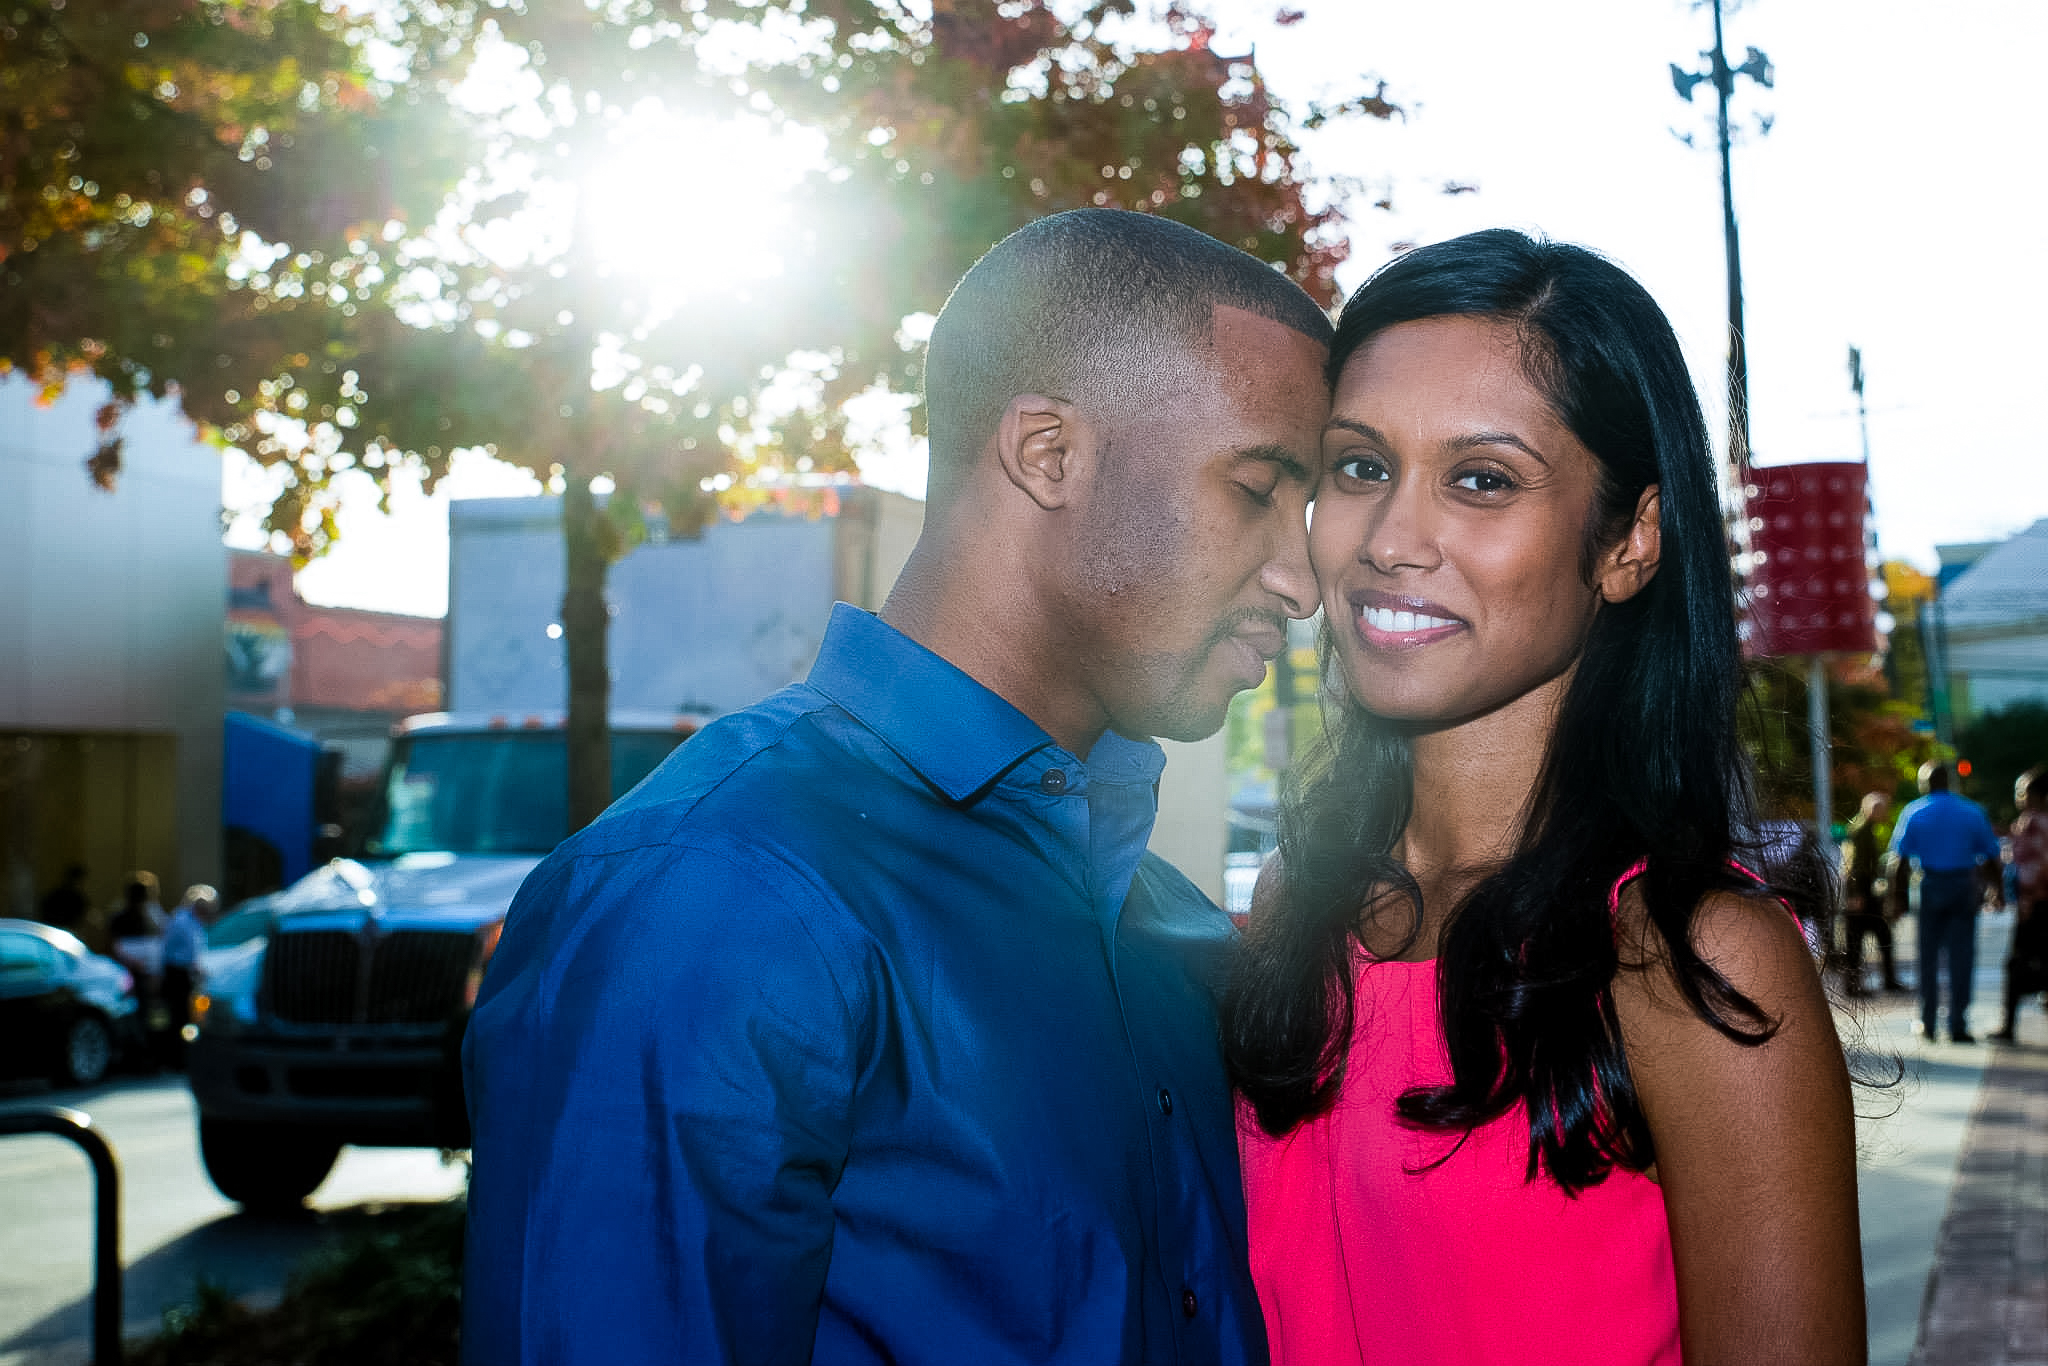 Wonderful sunny day for this engagement session.